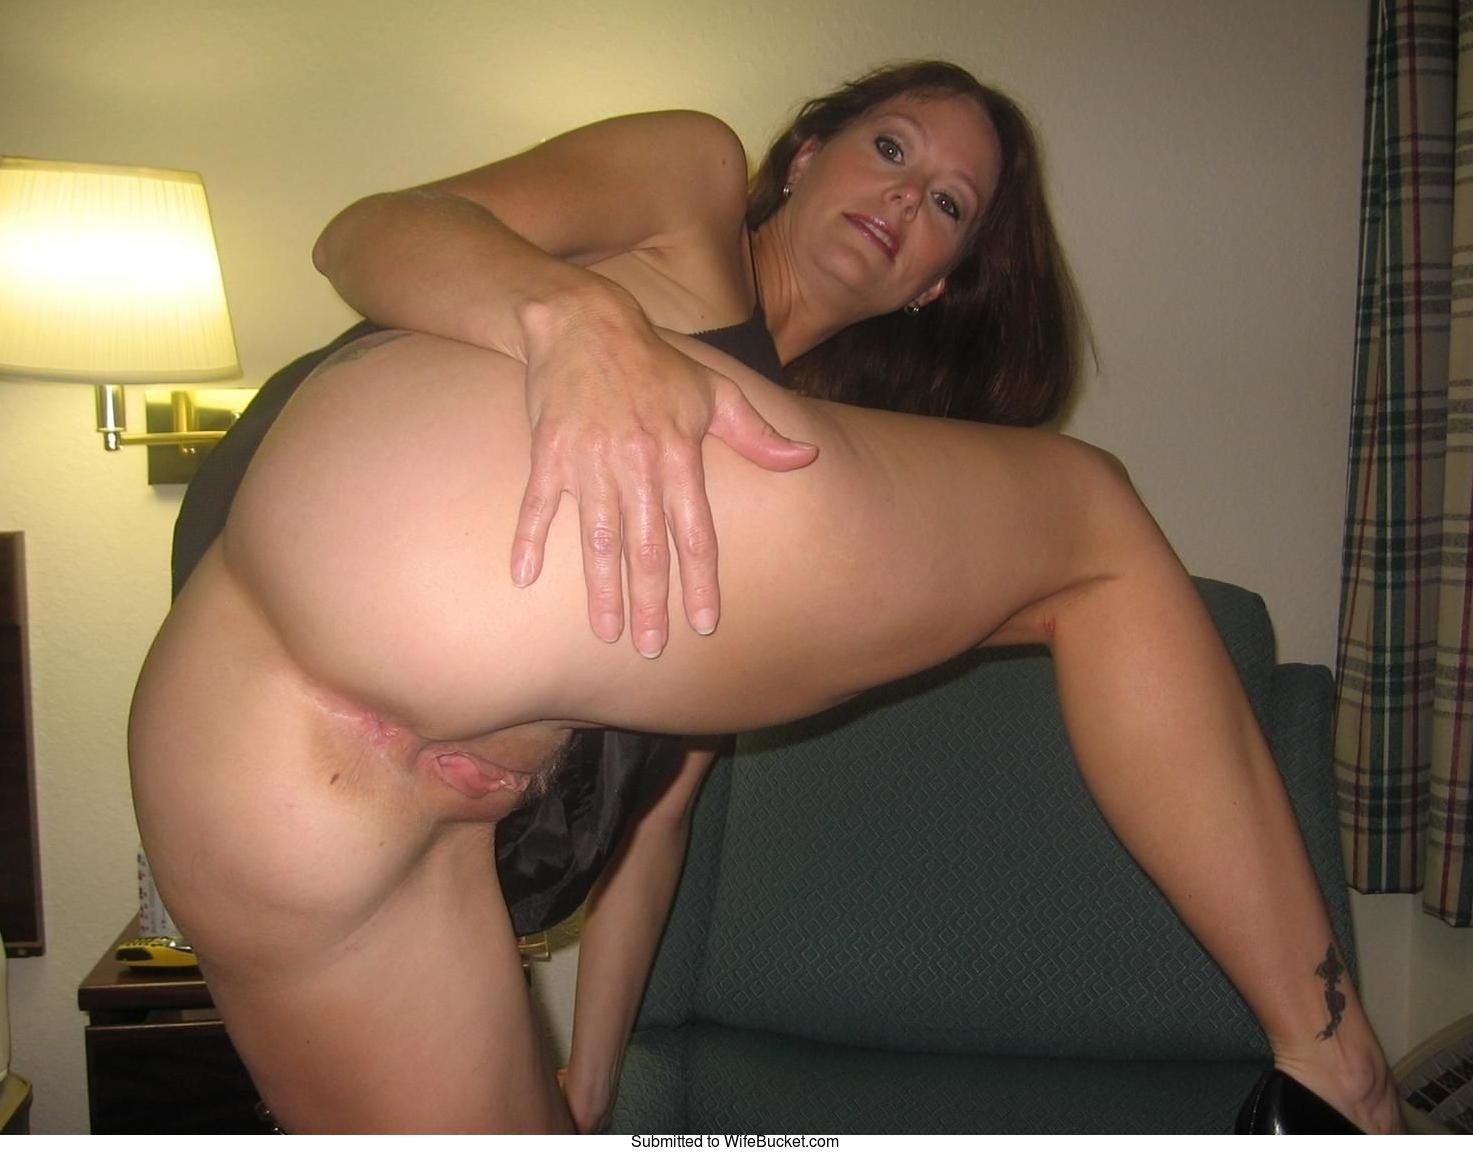 user-submitted pics archives | wifebucket | offical milf blog